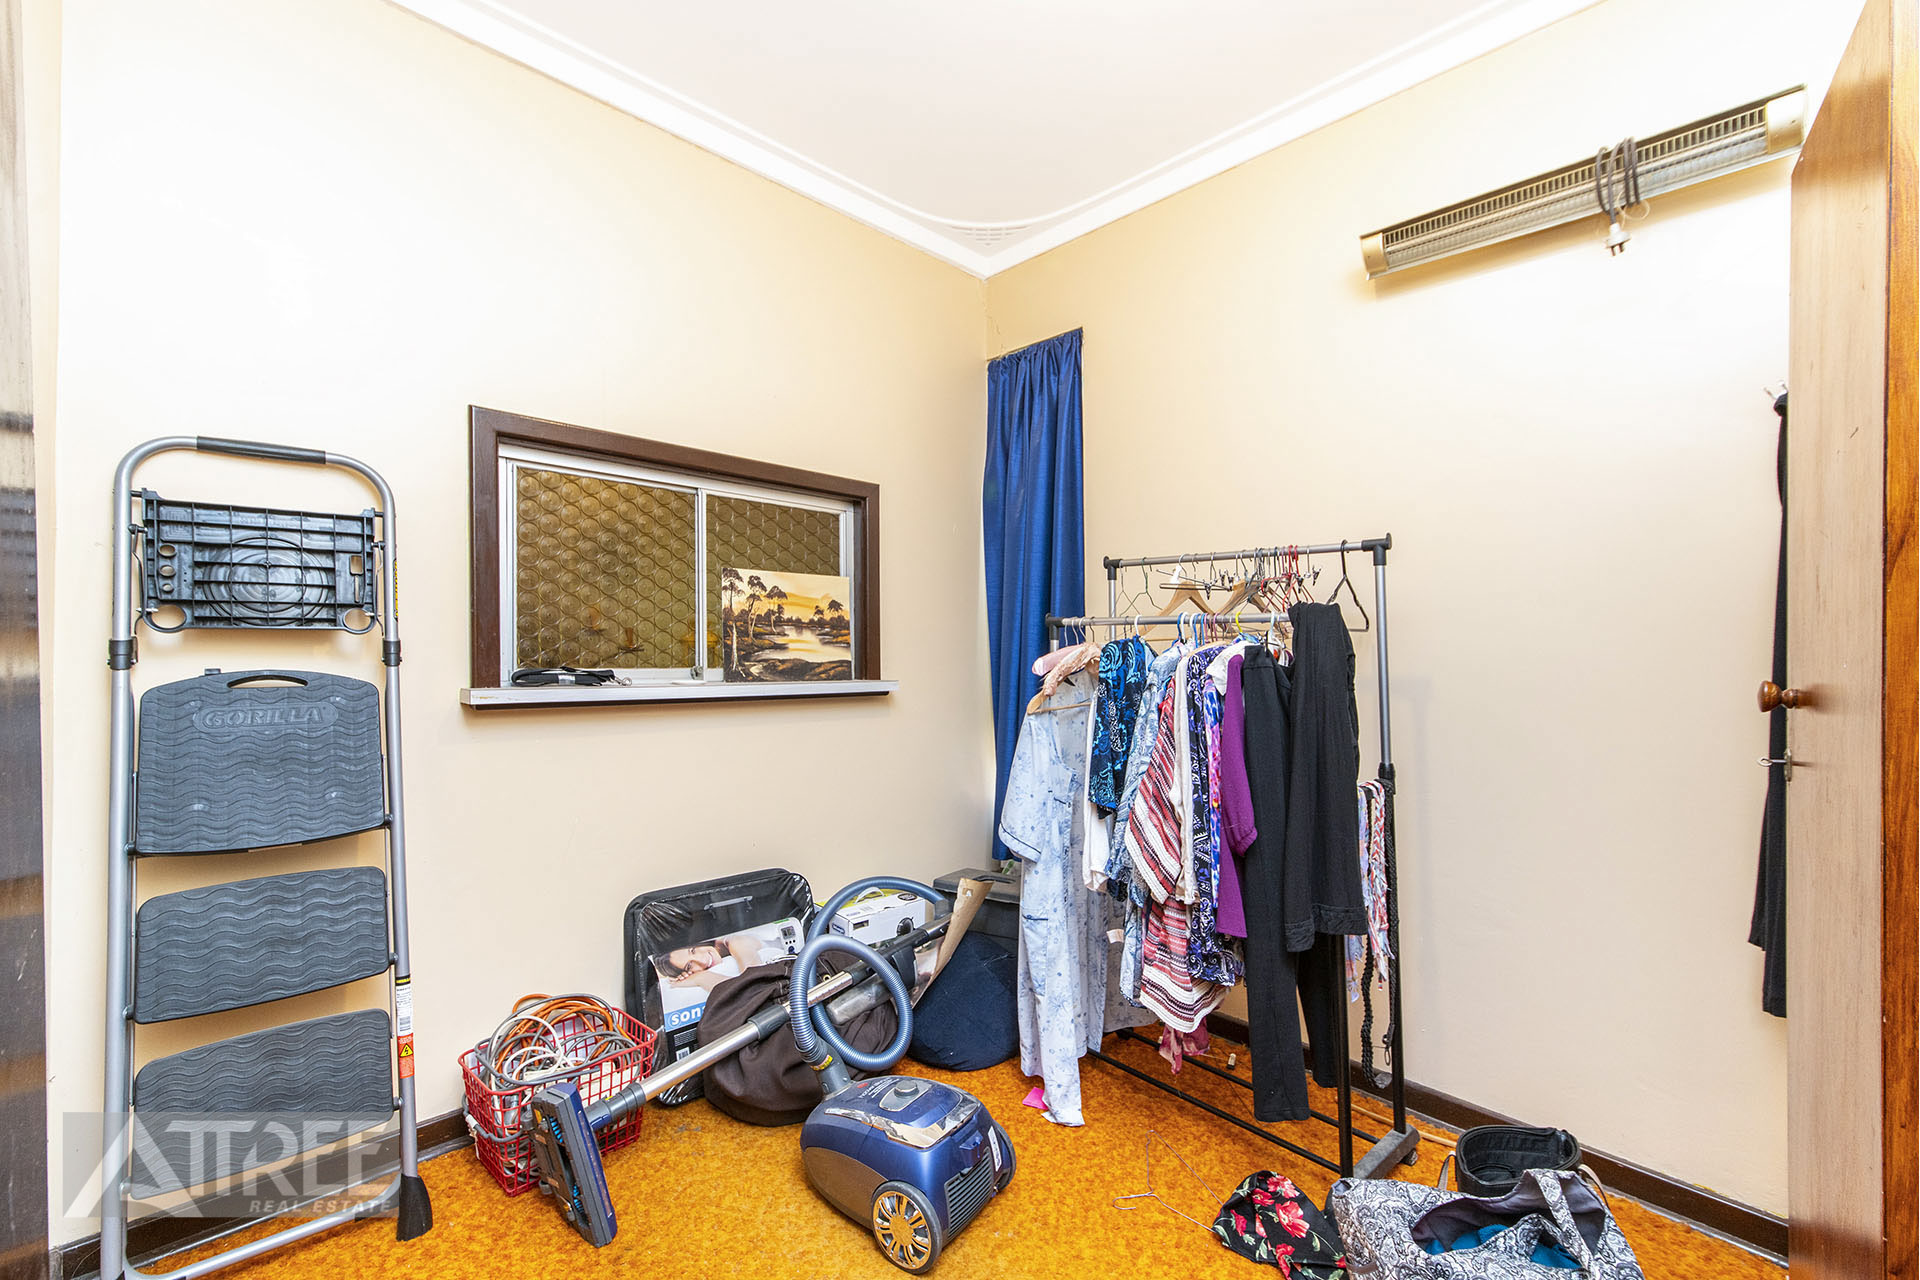 Property for sale in GOSNELLS, 54 Bert Street : Attree Real Estate